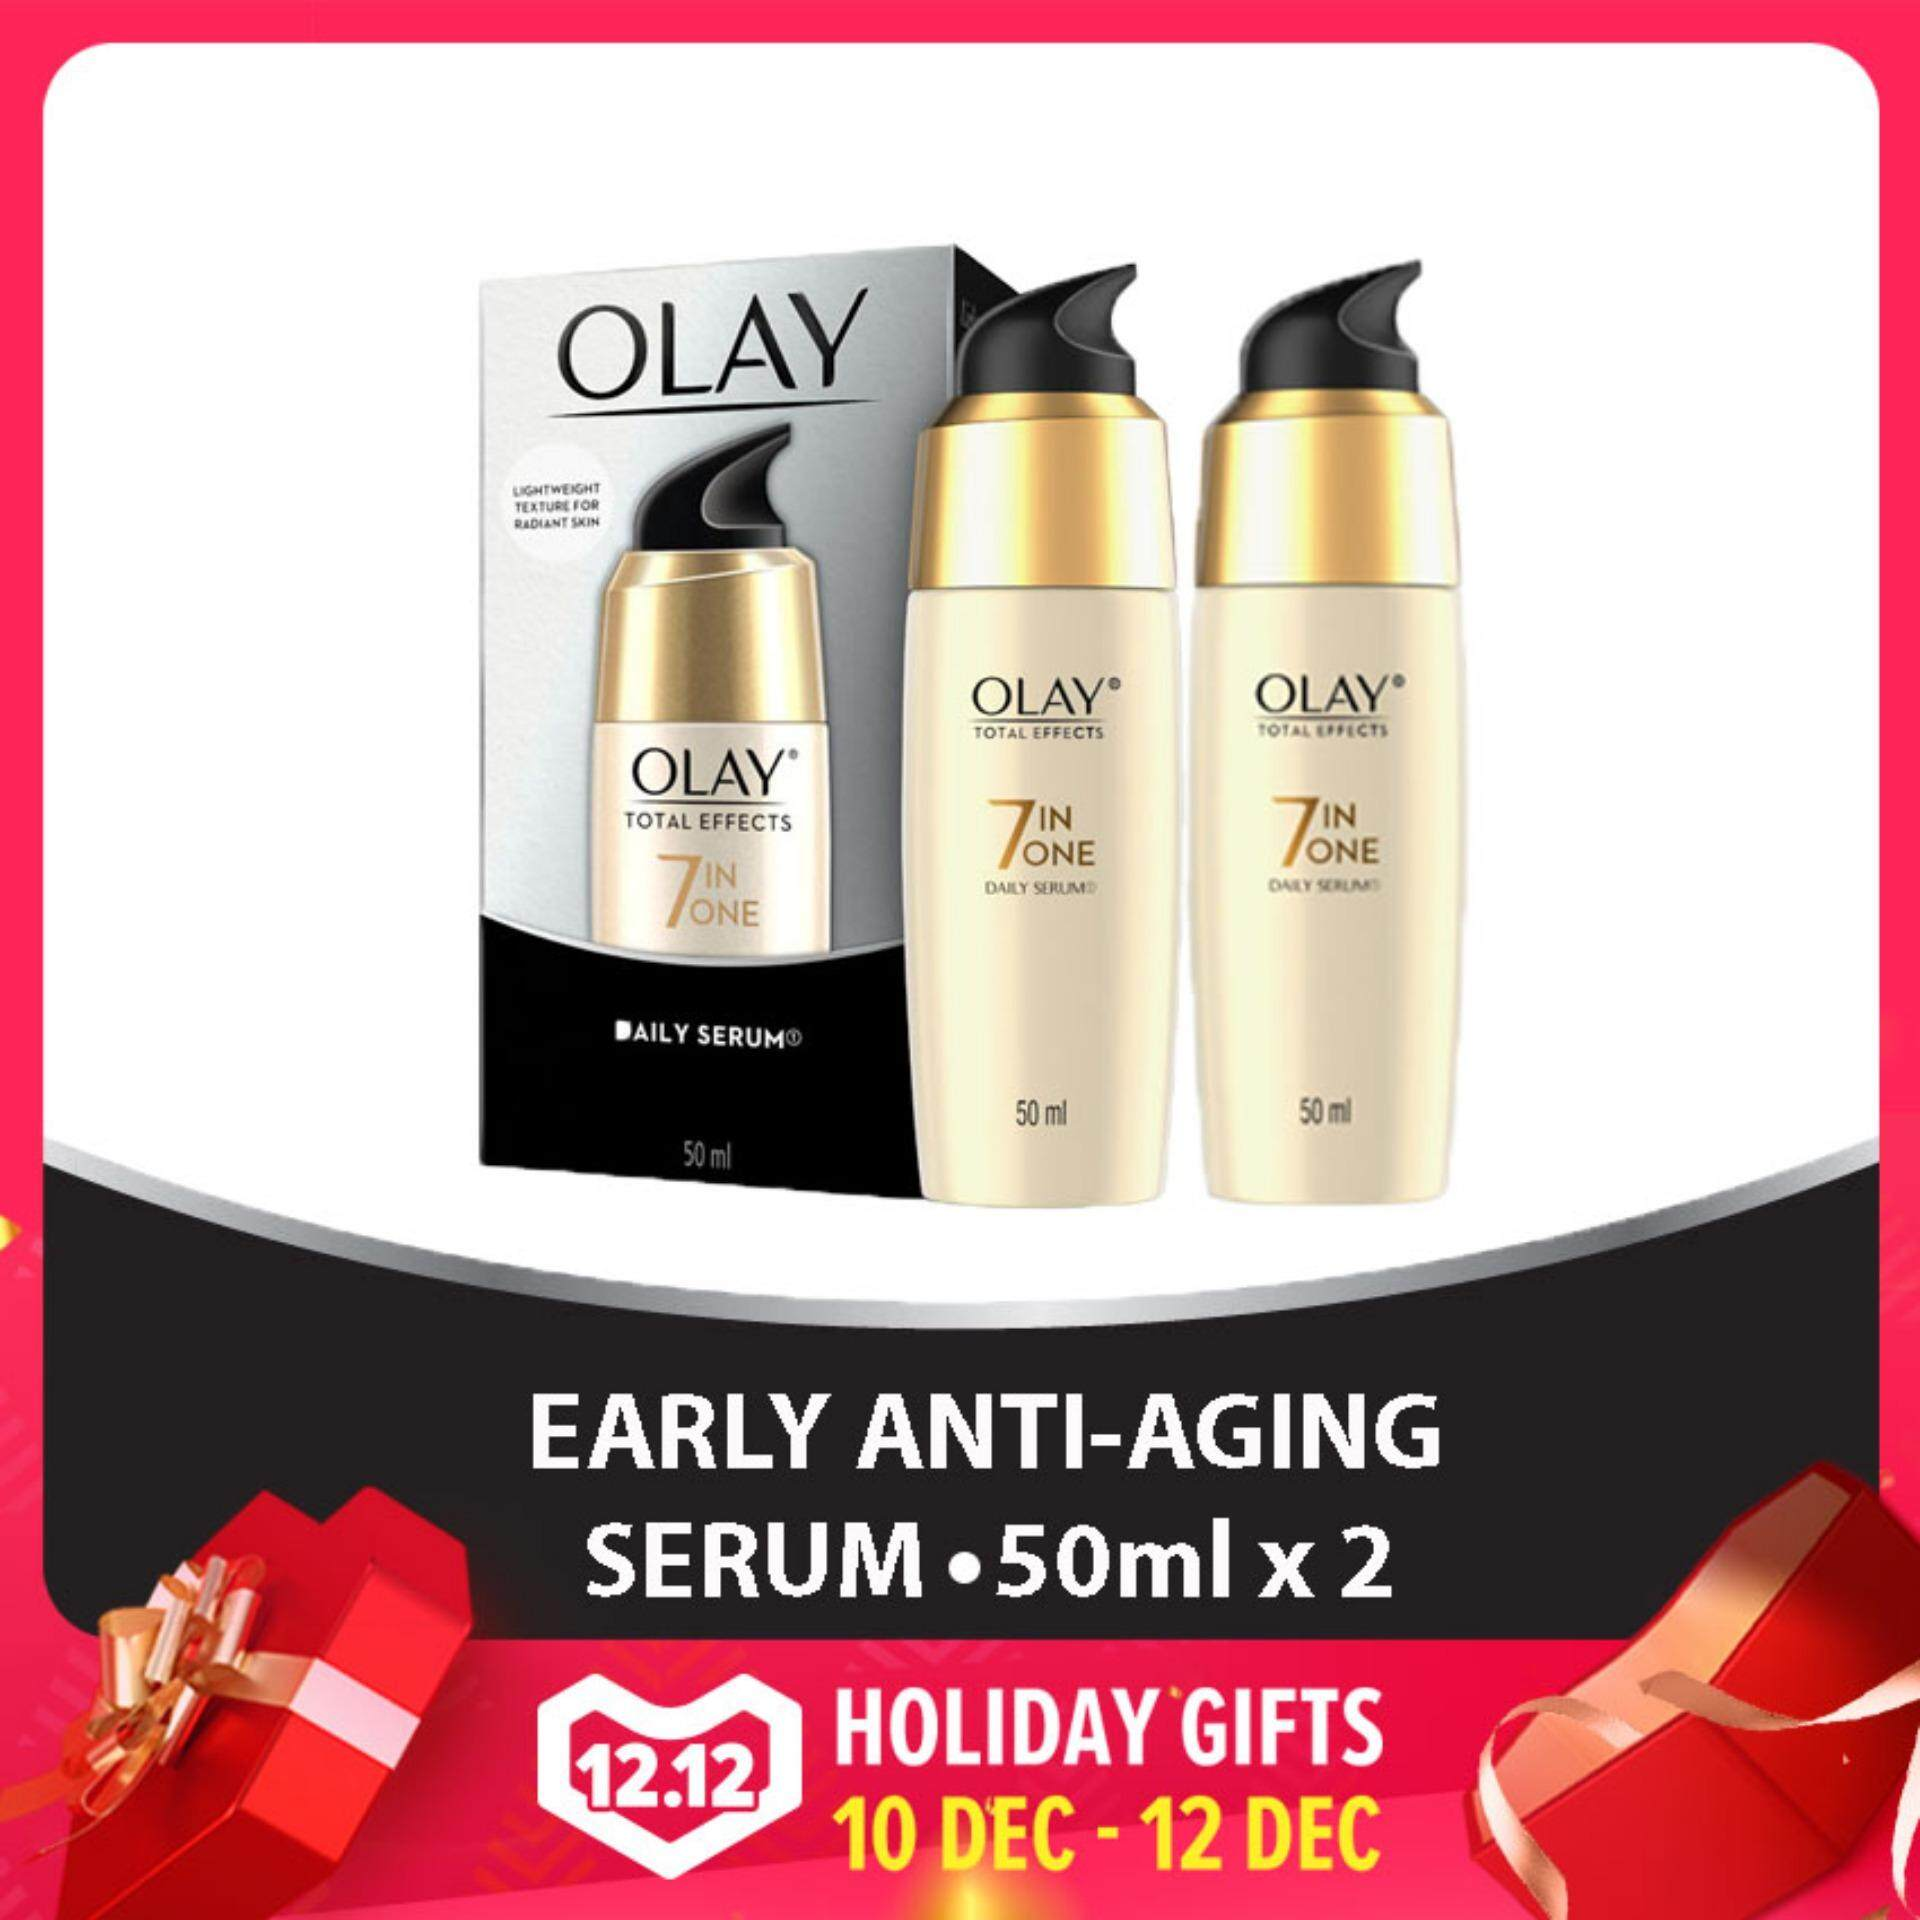 Olay Health Beauty Skincare Price In Malaysia Best Total Effects 7 One Day Cream Touch Of Foundation Spf 15 50gr Anti Ageing Serum 50ml Bundle 2